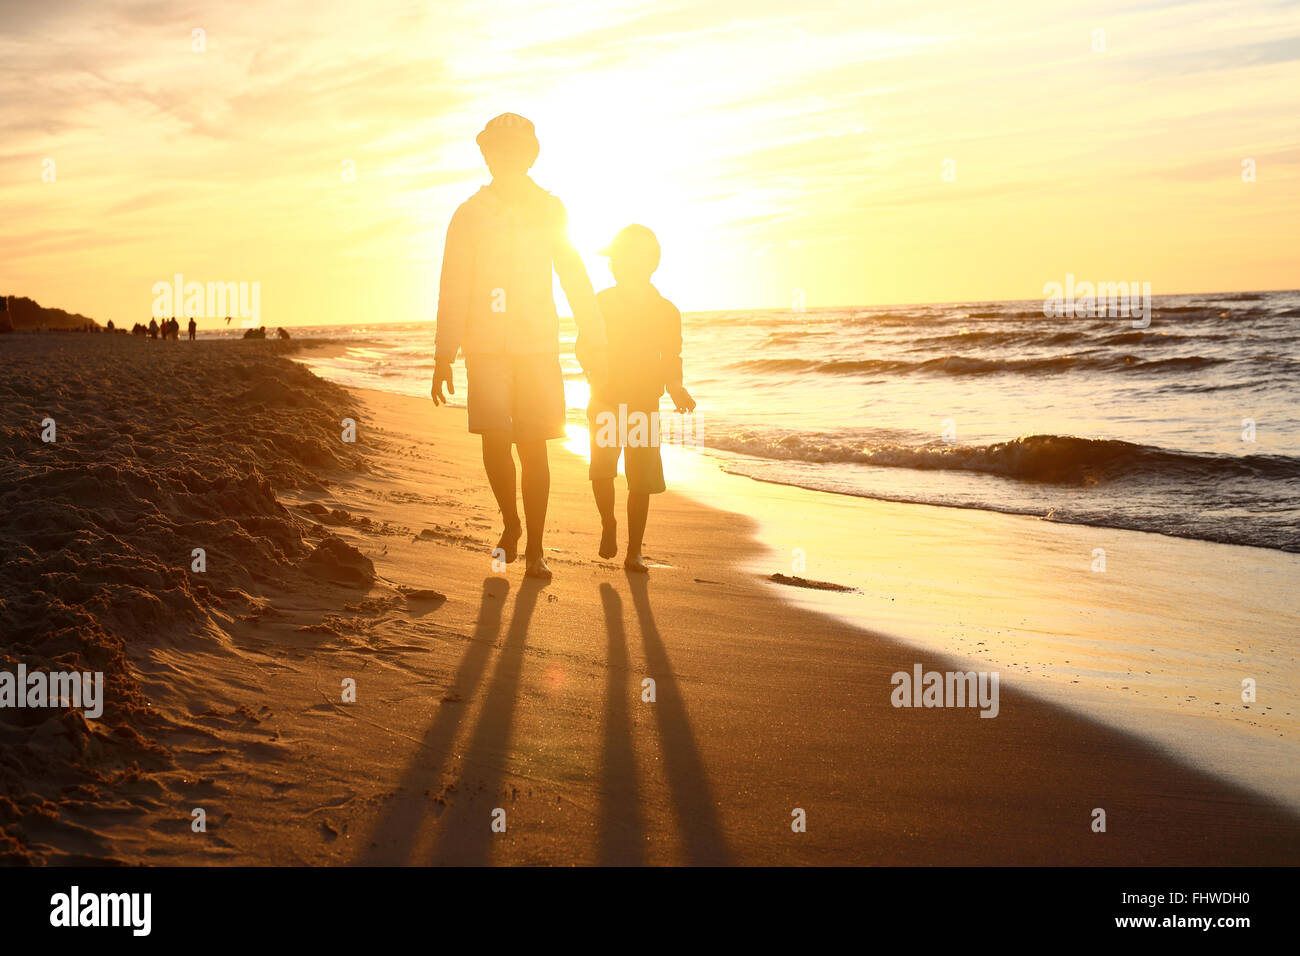 Walking on the beach, sunset. Children boy and girl playing on the sea shore on a sandy beach during sunset Stock Photo